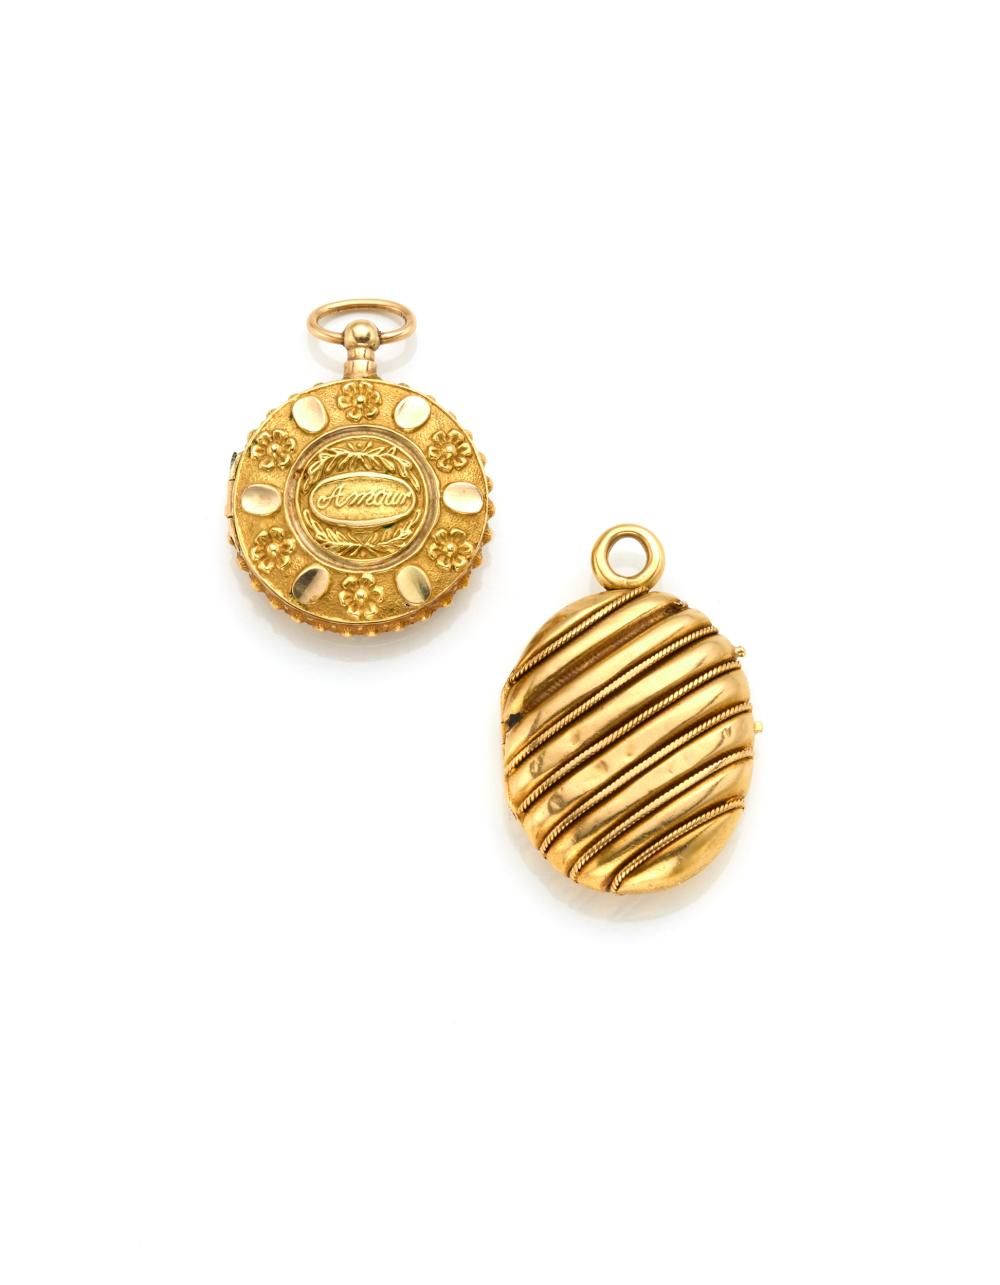 Yellow embossed gold lot consisting of a locket of cm 3.3 circa and a miniature locket of cm 3.2 circa, in all g 14.35 circa. (defects)...